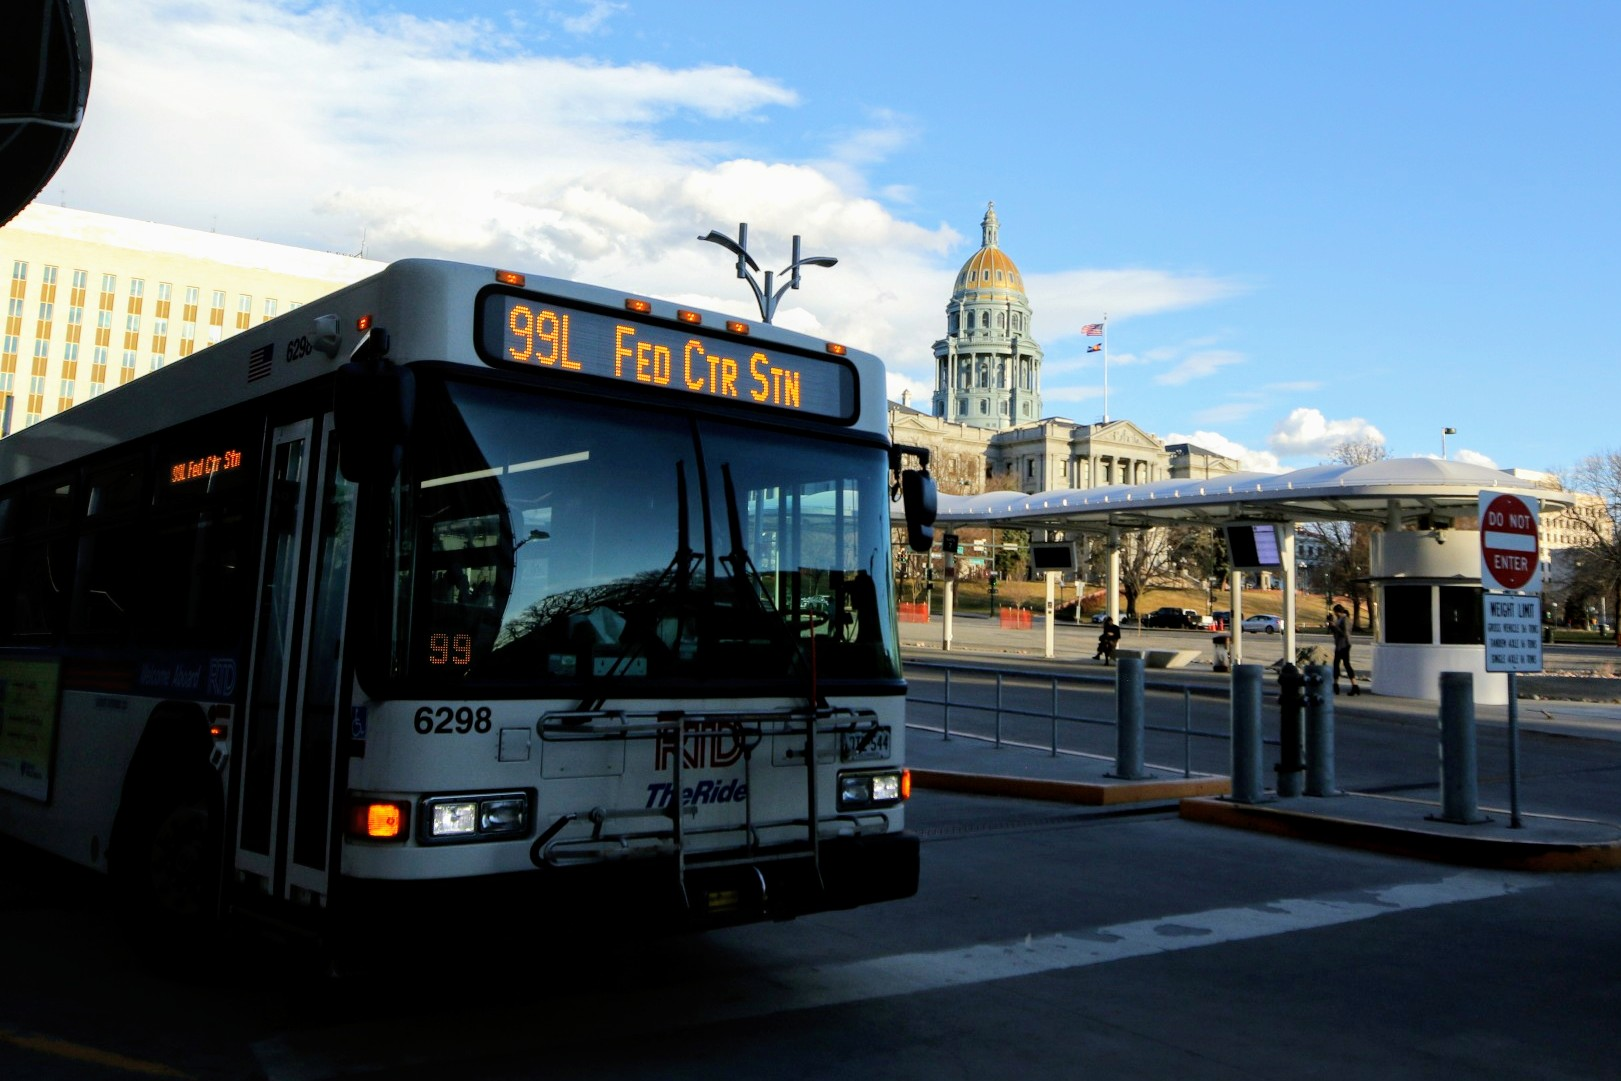 A 99L bus near the state Capitol in downtown Denver.